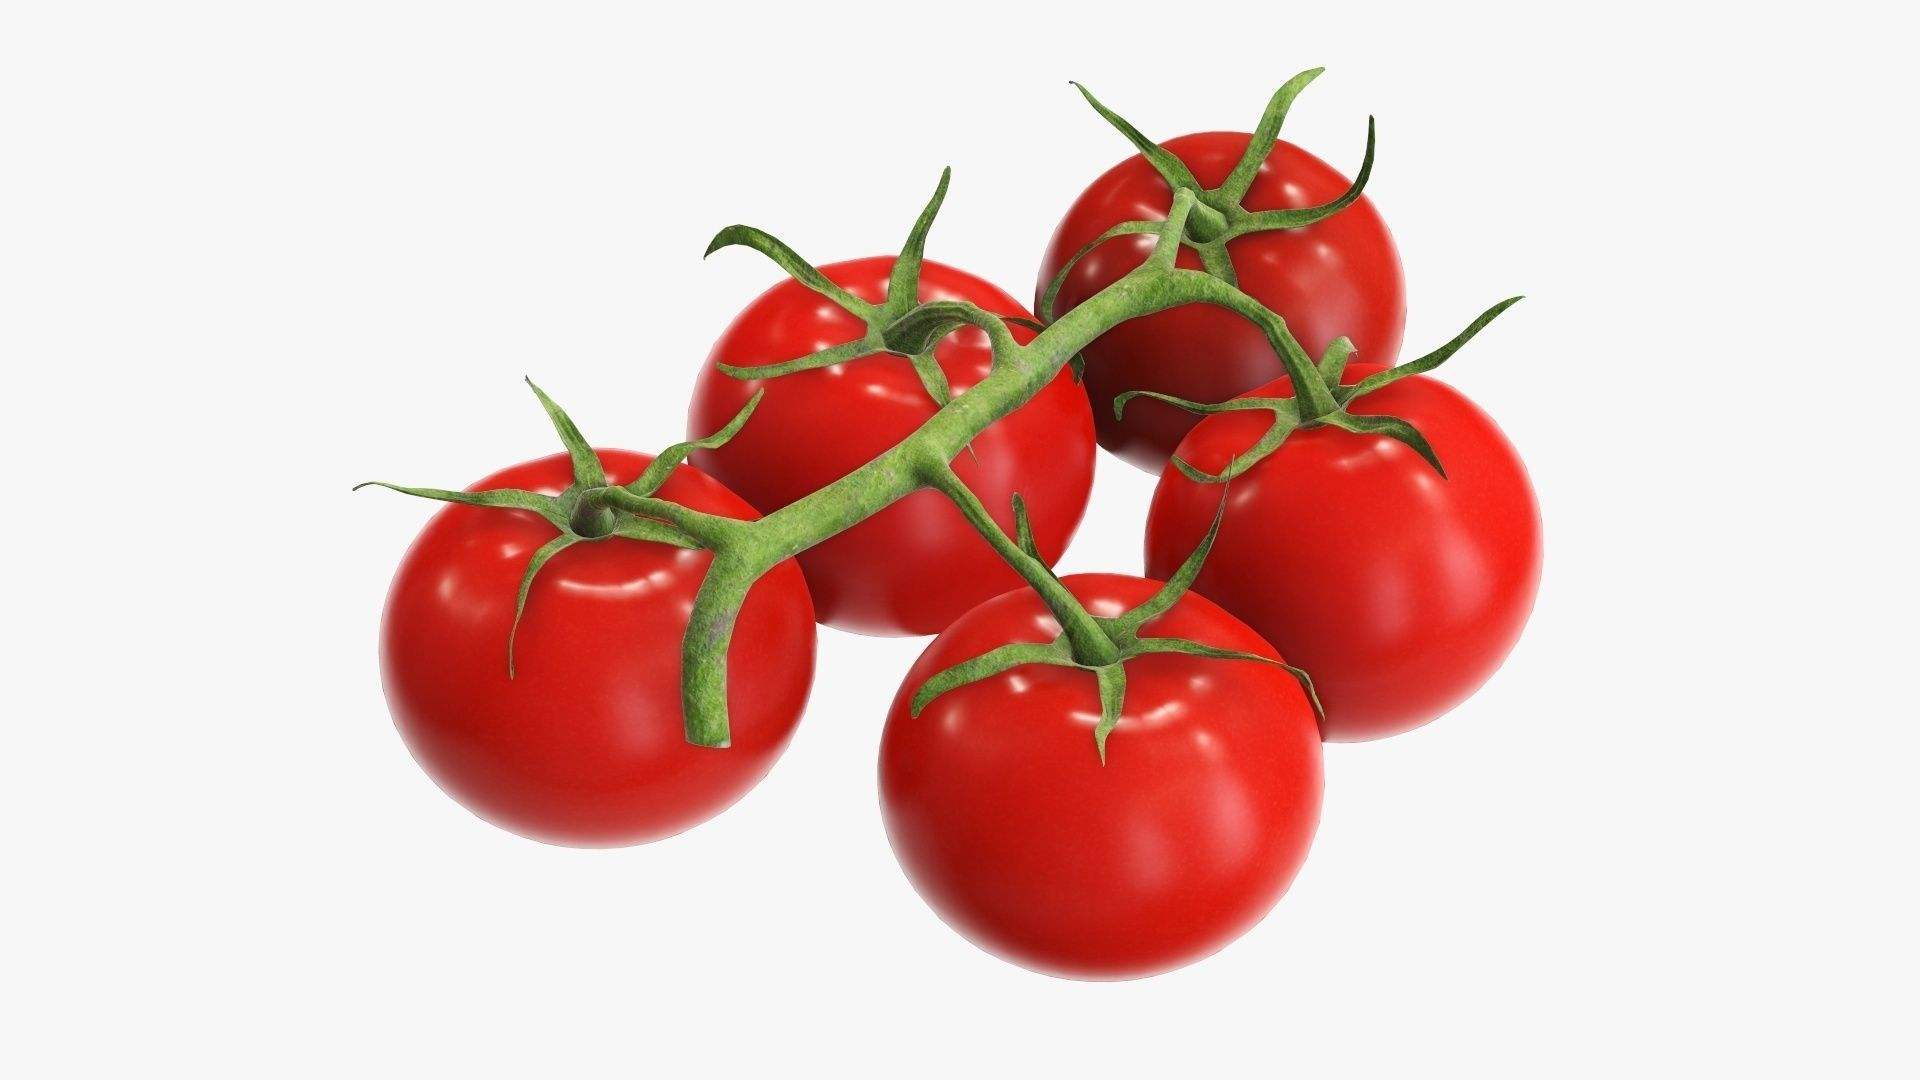 Branch with tomatoes 02